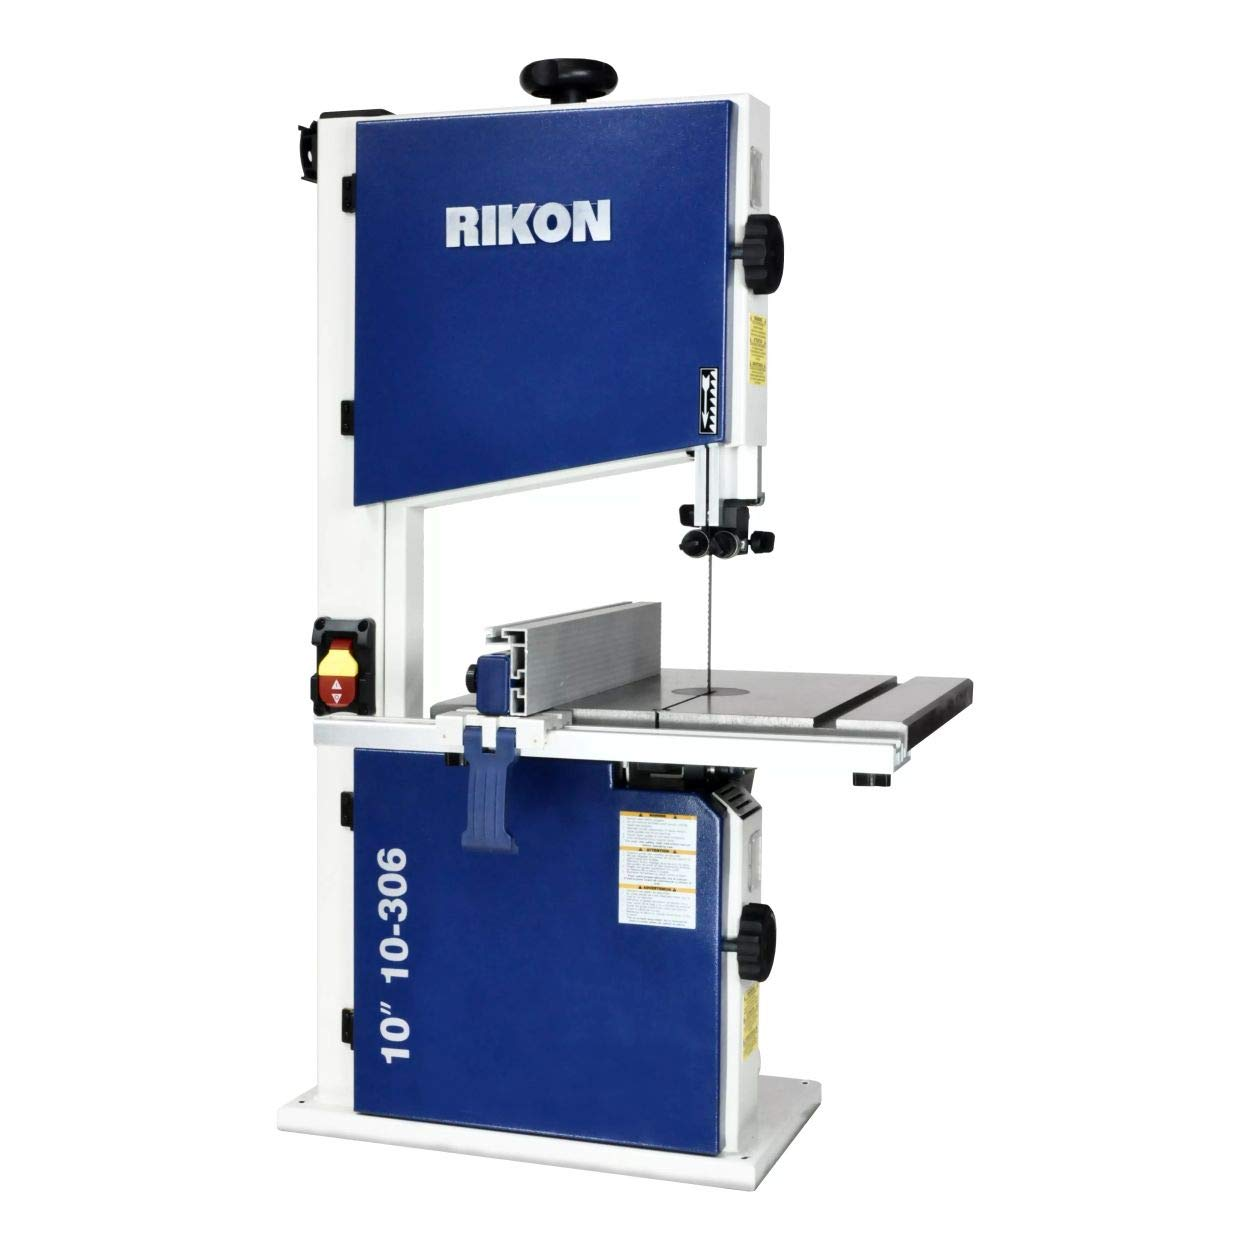 Rikon 10-306 10″ Deluxe Bandsaw by Rikon (Image #6)